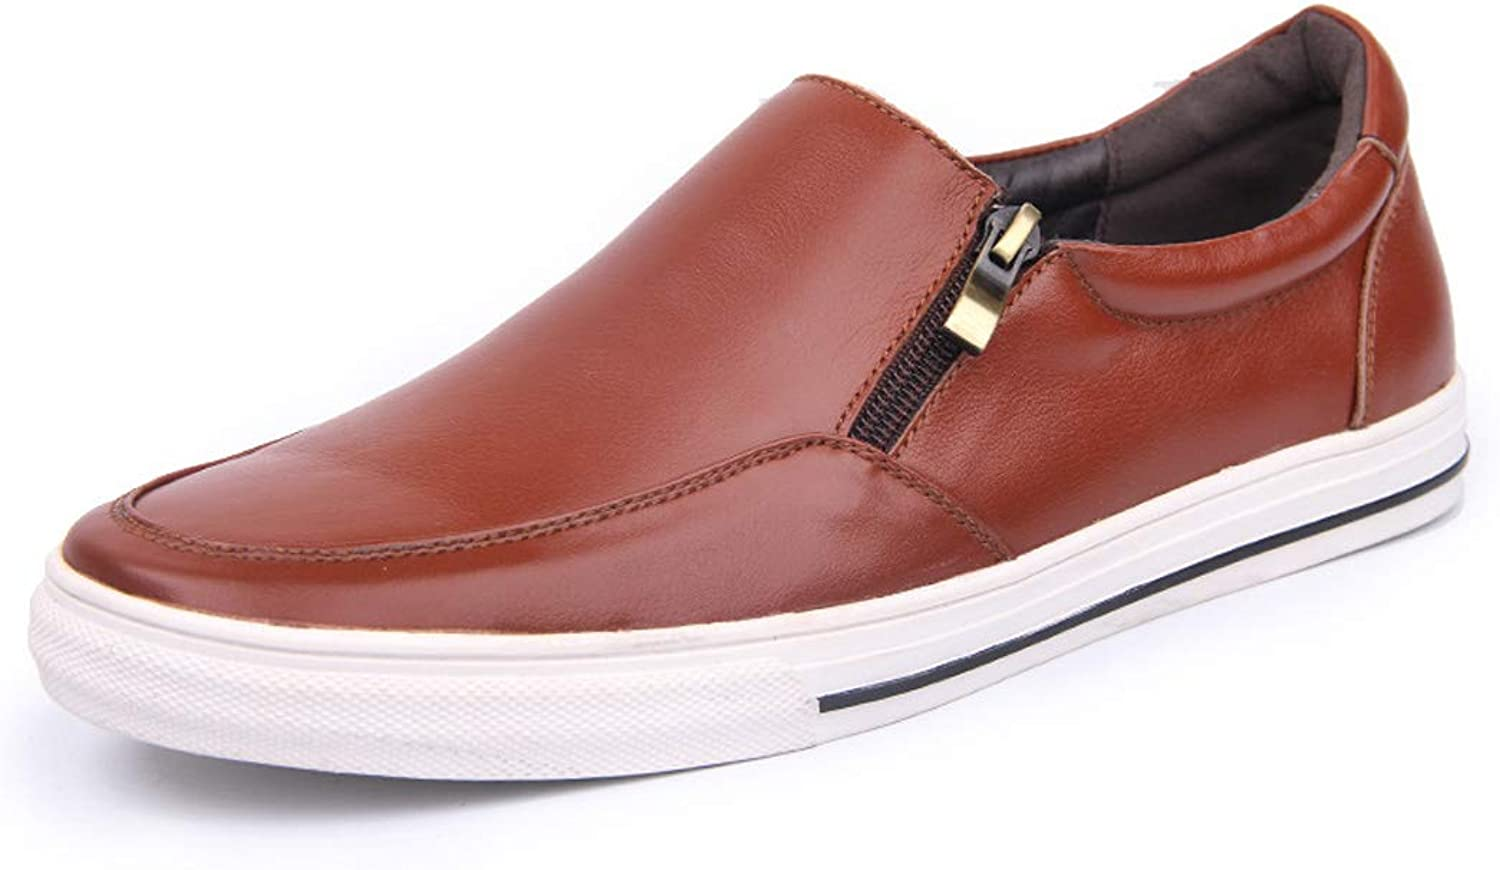 Unisex Adult shoes, Fashion Low-top Driving shoes